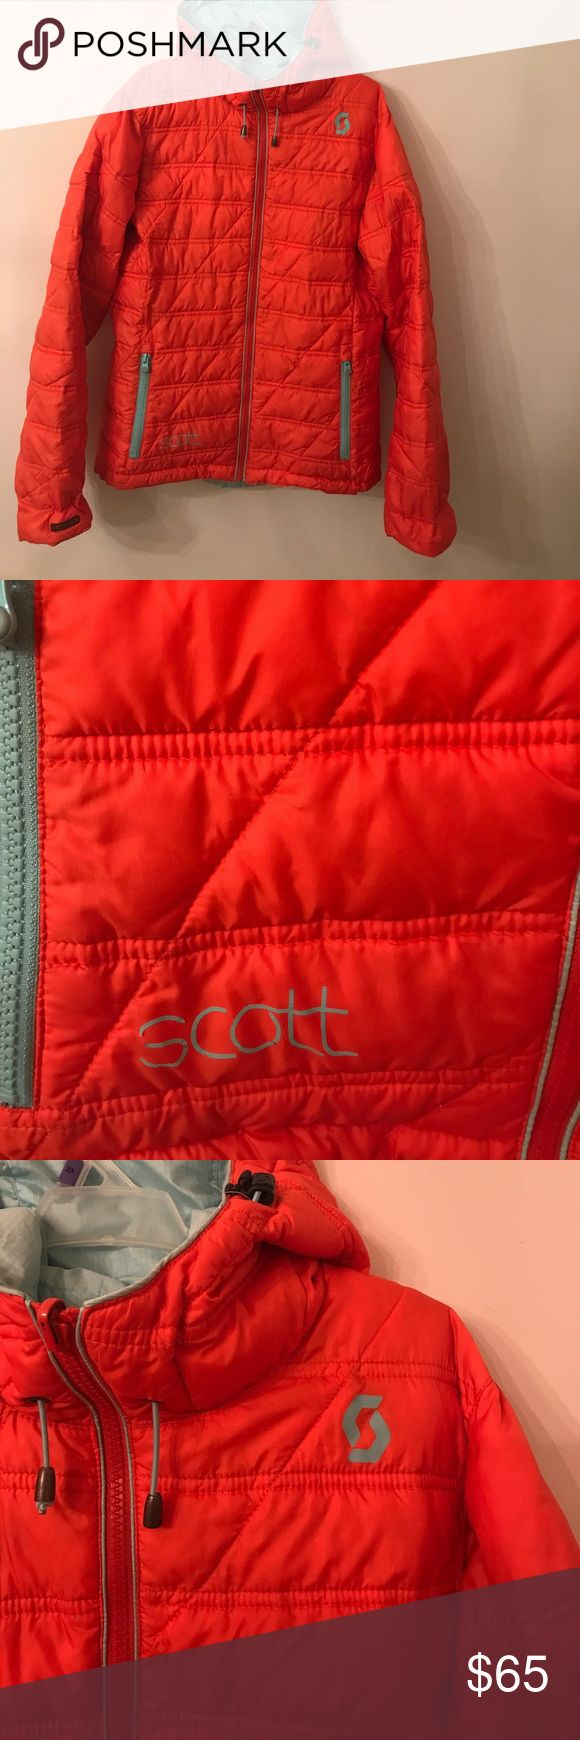 Scott sports apparel juniors puffer jckt sz 4/6 sm Lk nw worn once retails online bought @ www.backcountry.com  Retailed new $250.... its amazing best jacket style comfort ever hood tons of zippers pockets 💦 proof get this amazing junior sz 4/6 jacket today wow SCOTT Jackets & Coats Puffers